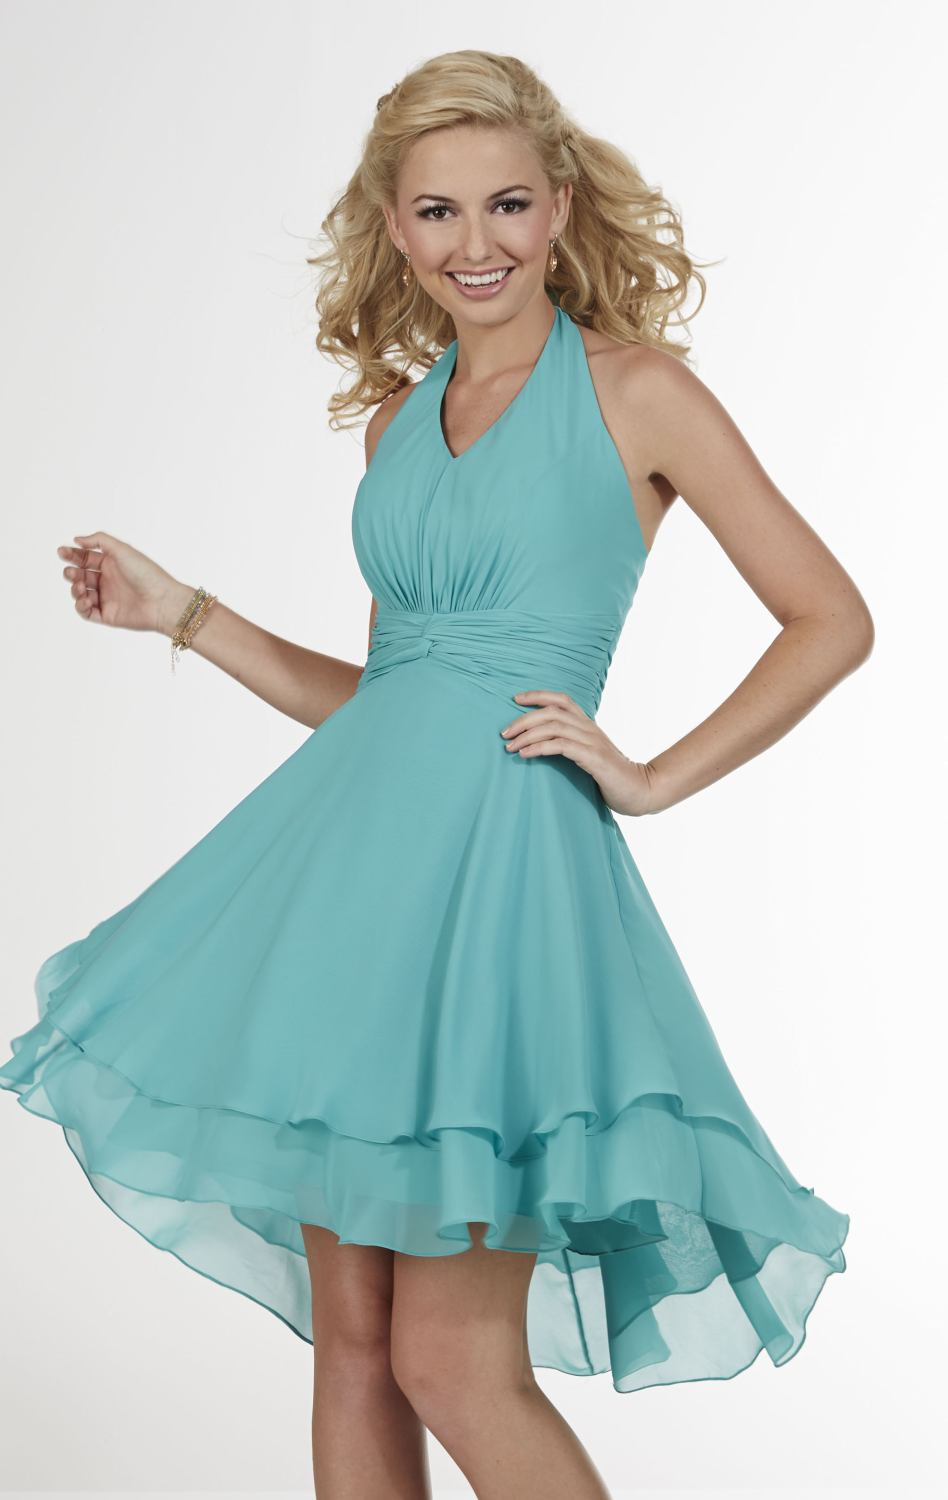 Latest design 2017 halter neck chiffon light blue short bridesmaid latest design 2017 halter neck chiffon light blue short bridesmaid dresses pleat wedding party gown dress vestido madrinha bd067 in bridesmaid dresses from ombrellifo Image collections